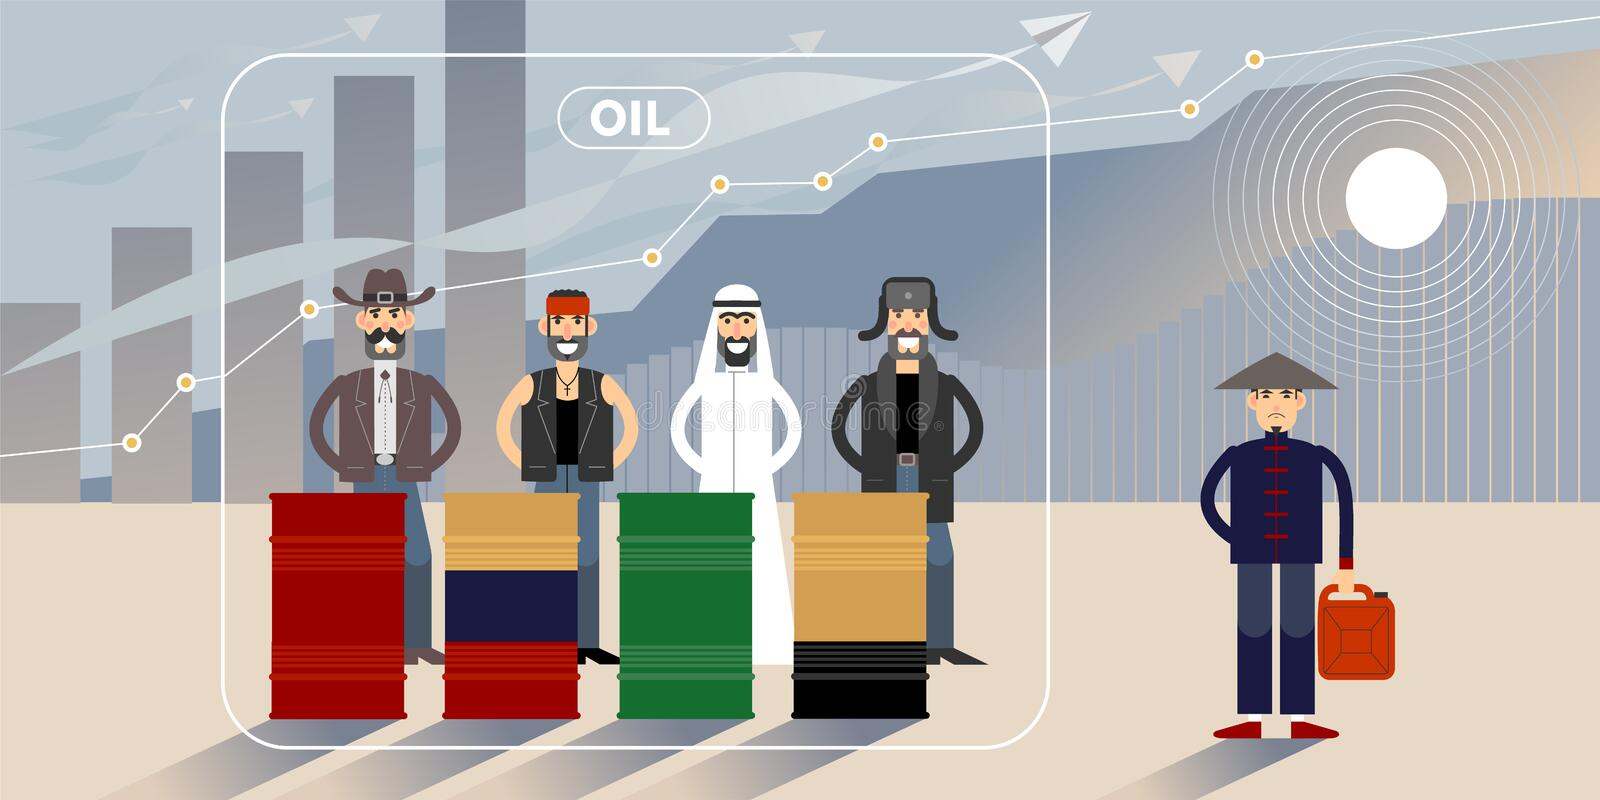 Oil price chart illustration with personages. Oil price growth chart illustration with different national character personages royalty free illustration